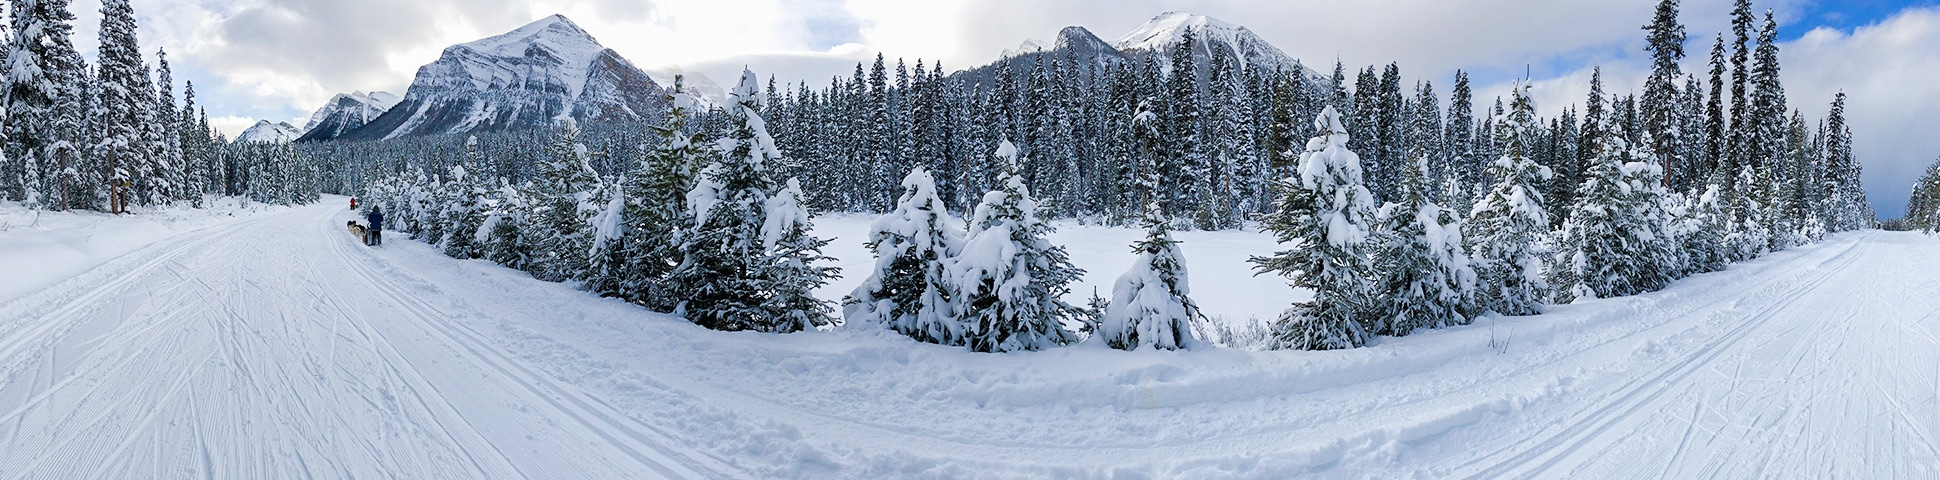 Panorama of Great Divide 1A XC ski trail in Banff National Park, Alberta